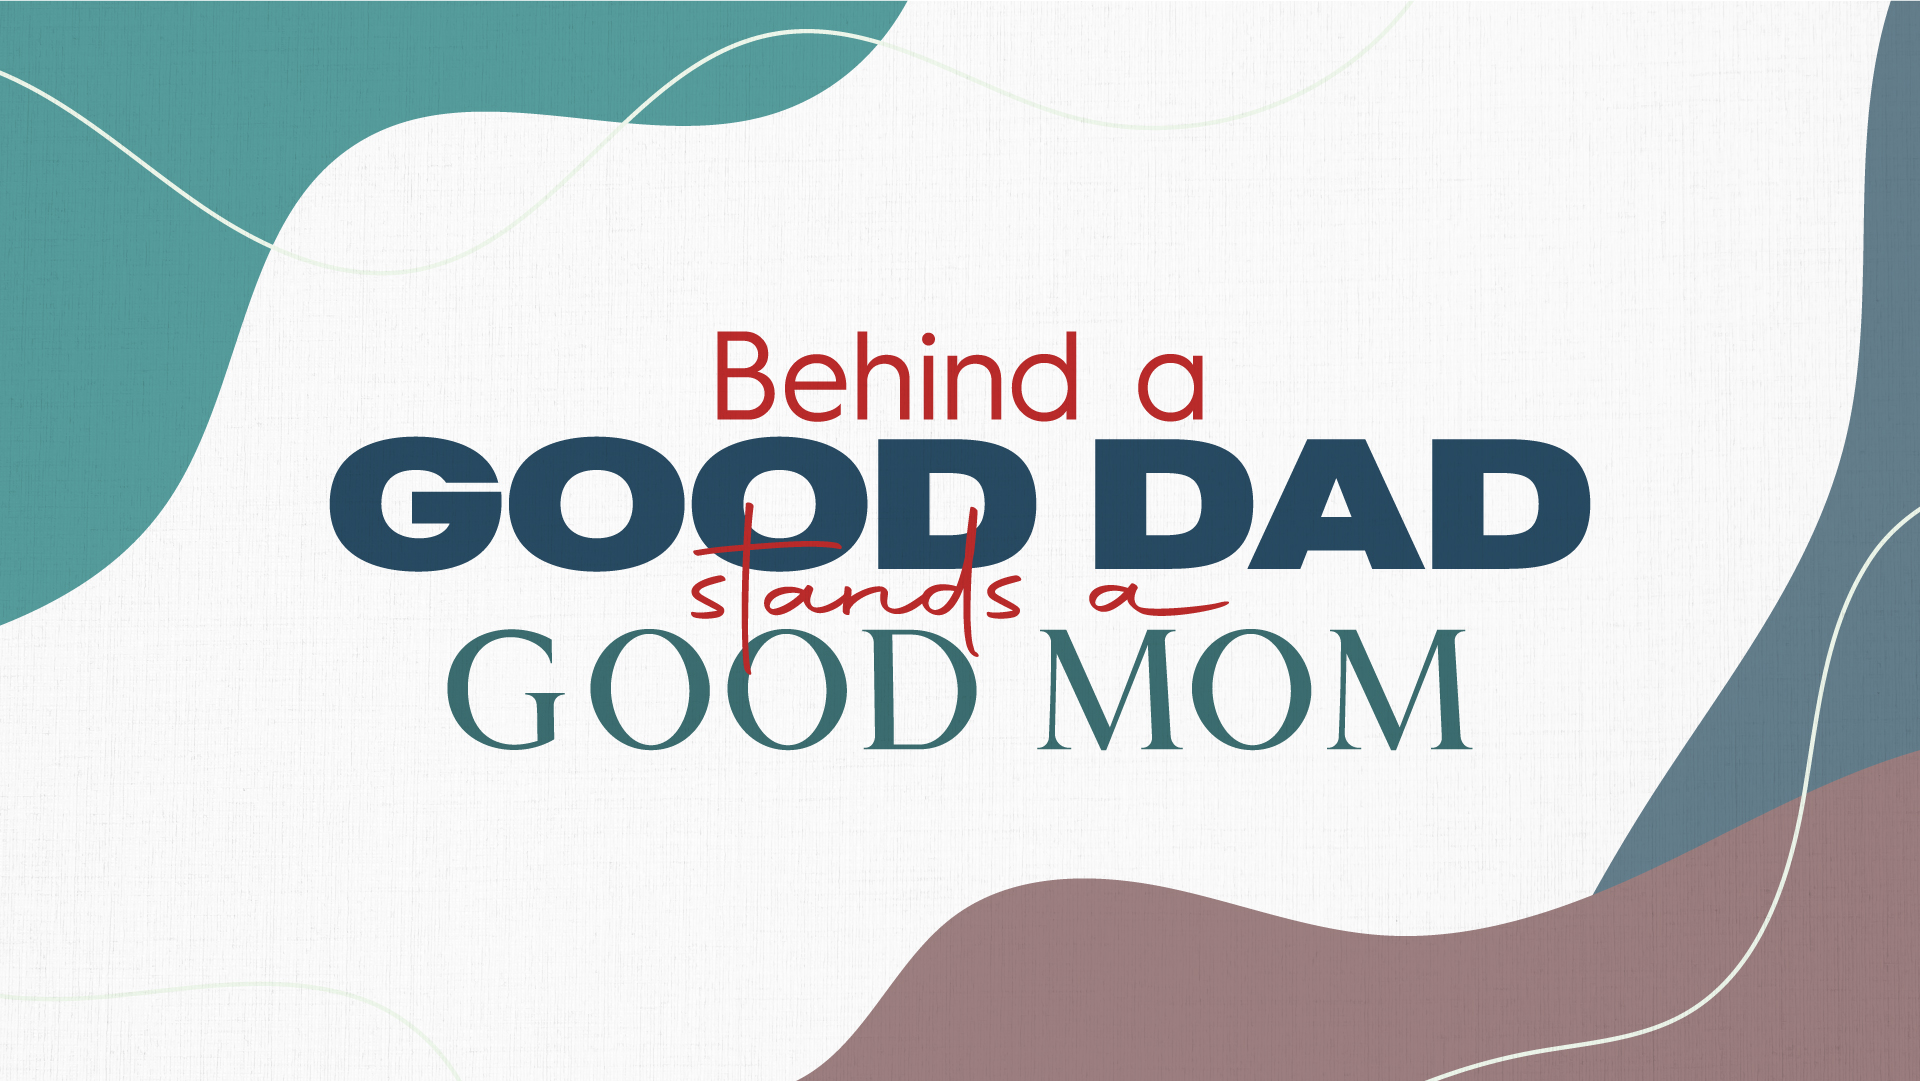 BEHIND A GOOD DAD STANDS A GOOD MOM!